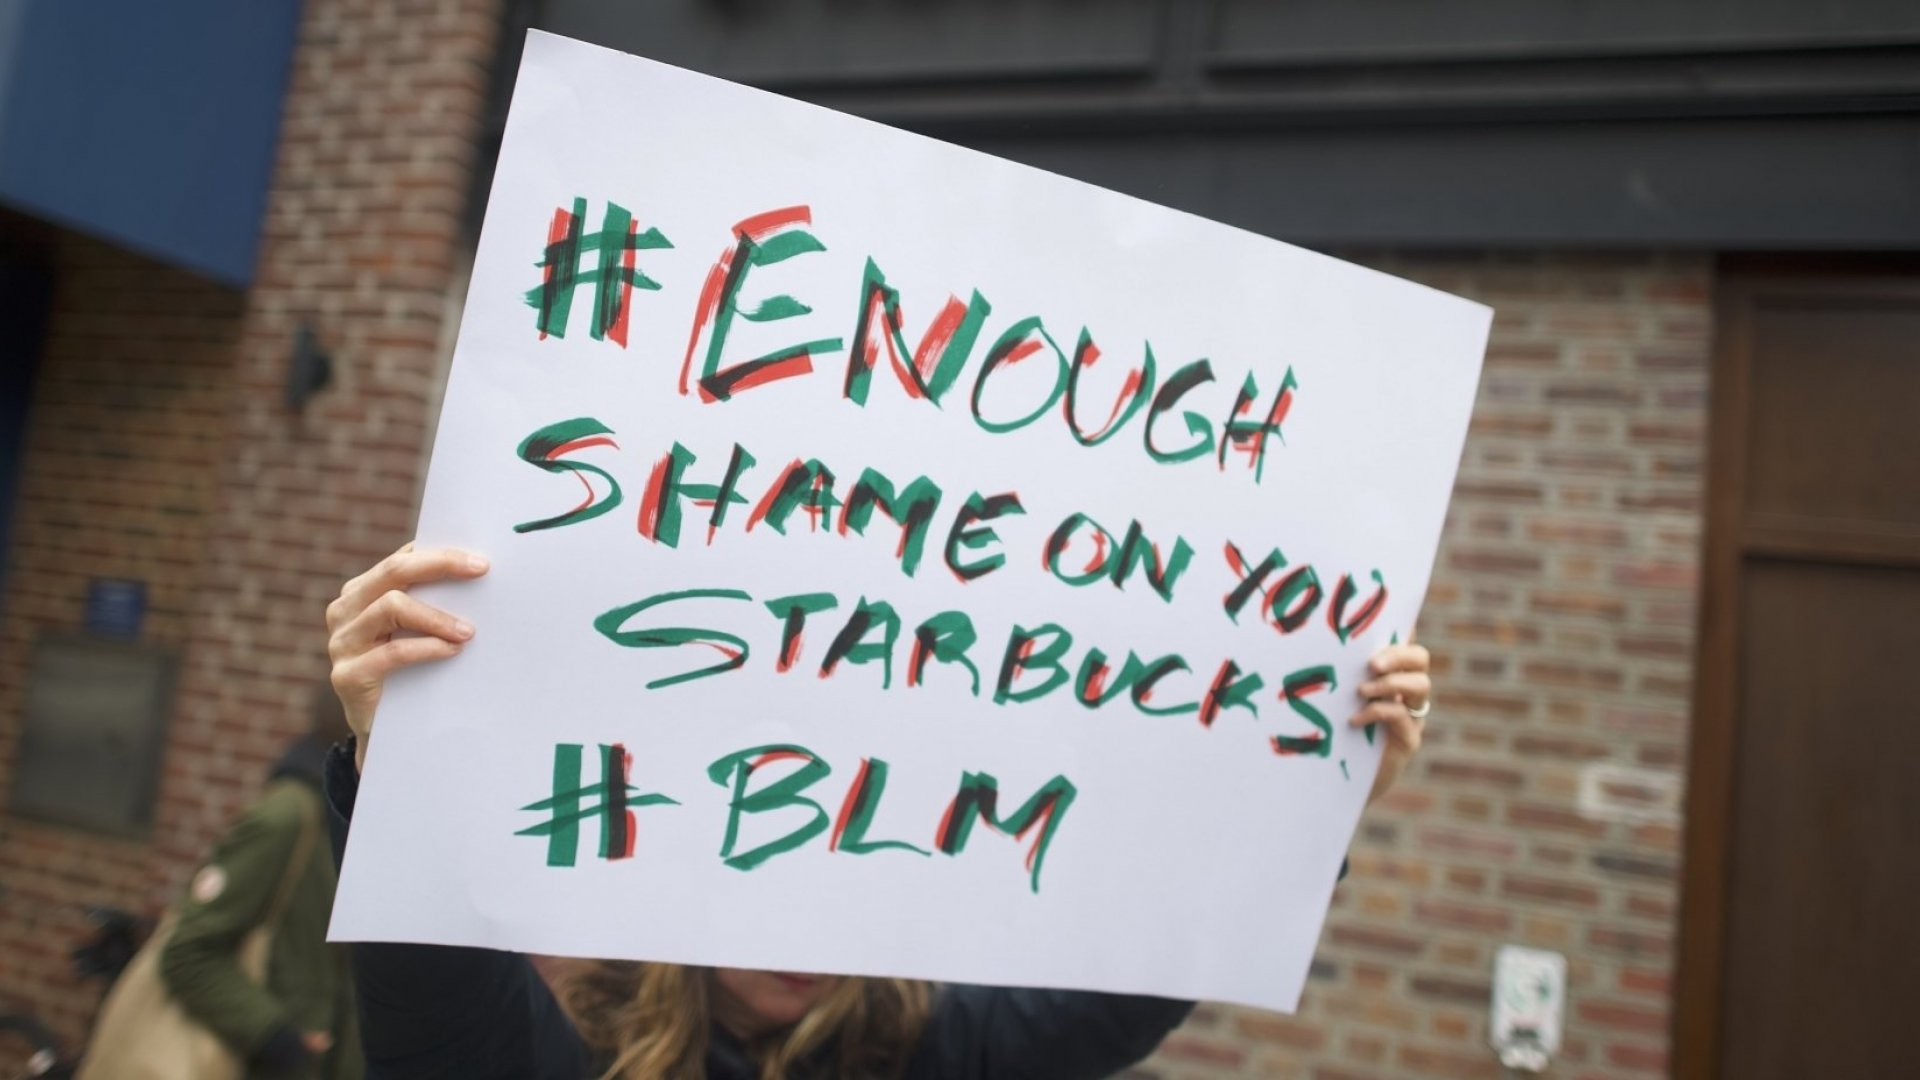 Starbucks's PR Nightmare Shows the 1 Thing You Can't Control When Your Business Gets Big